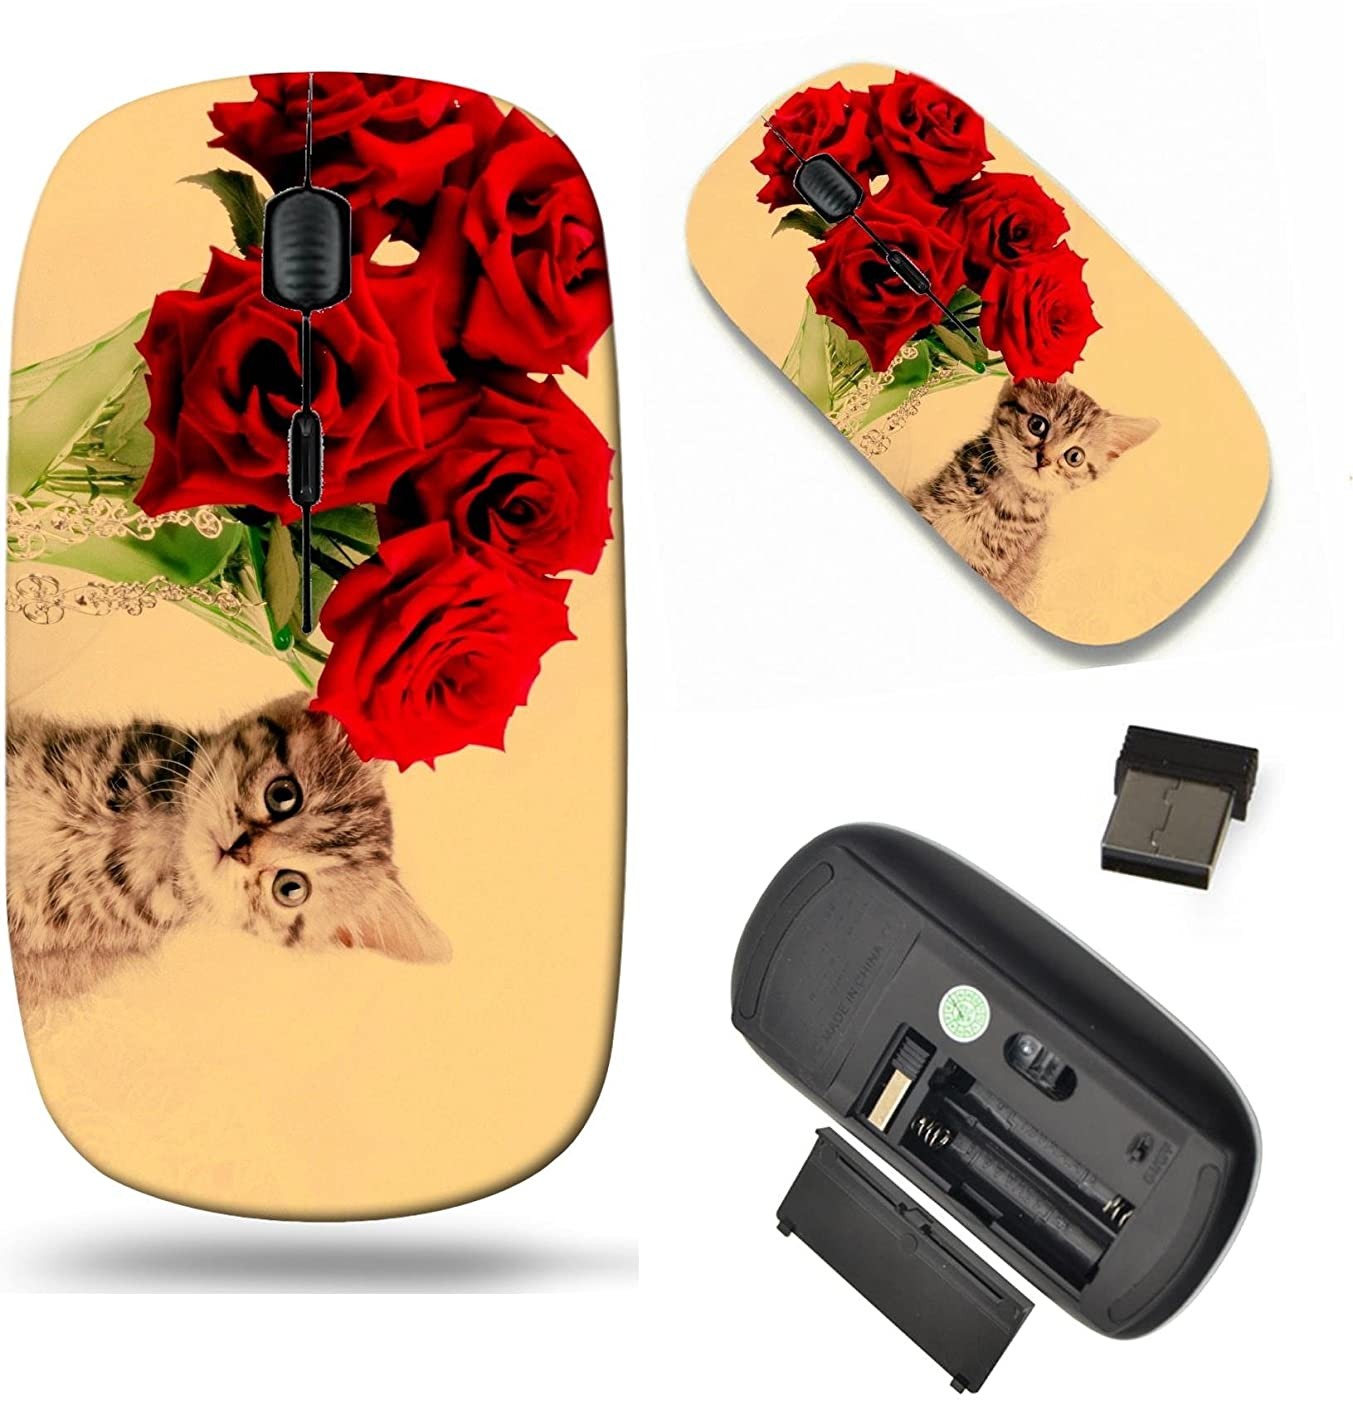 MSD Wireless Mouse Travel 2.4G Wireless Mice with USB Receiver, Noiseless and Silent Click with 1000 DPI for Notebook, pc, Laptop, Computer, mac Book Design 20607398 Beautiful Scottish Young cat